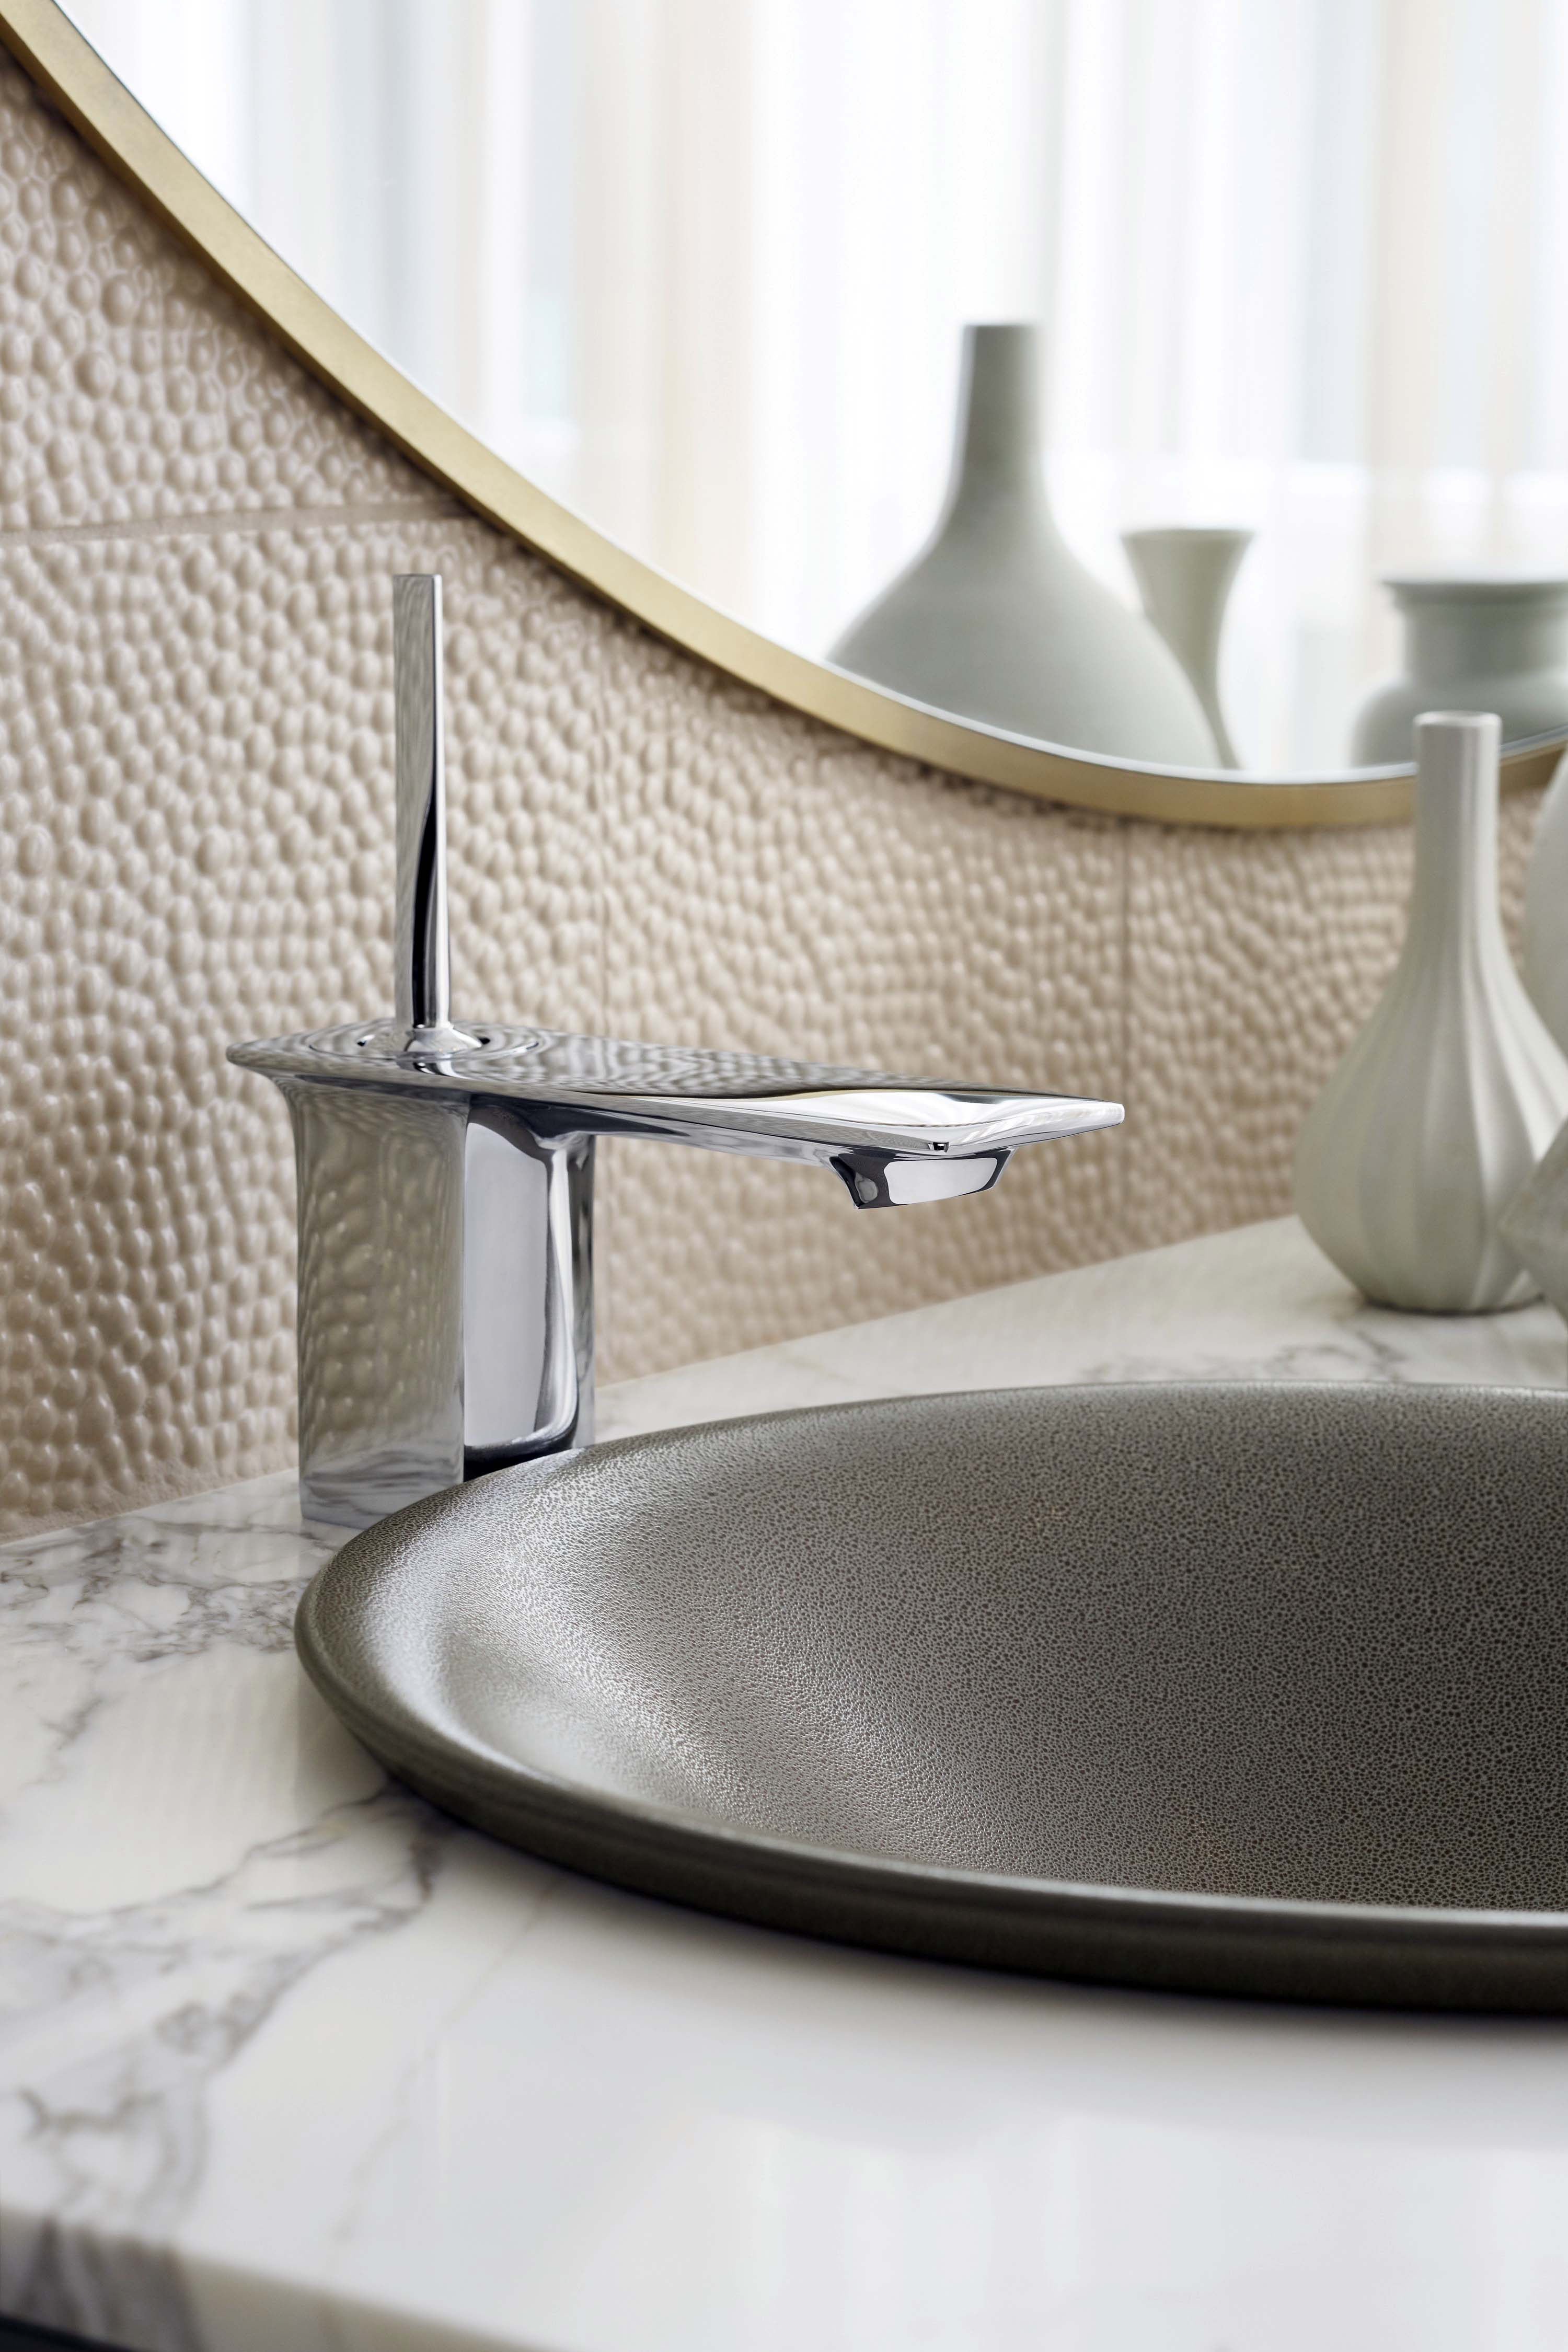 KOHLER'S footprint on rise